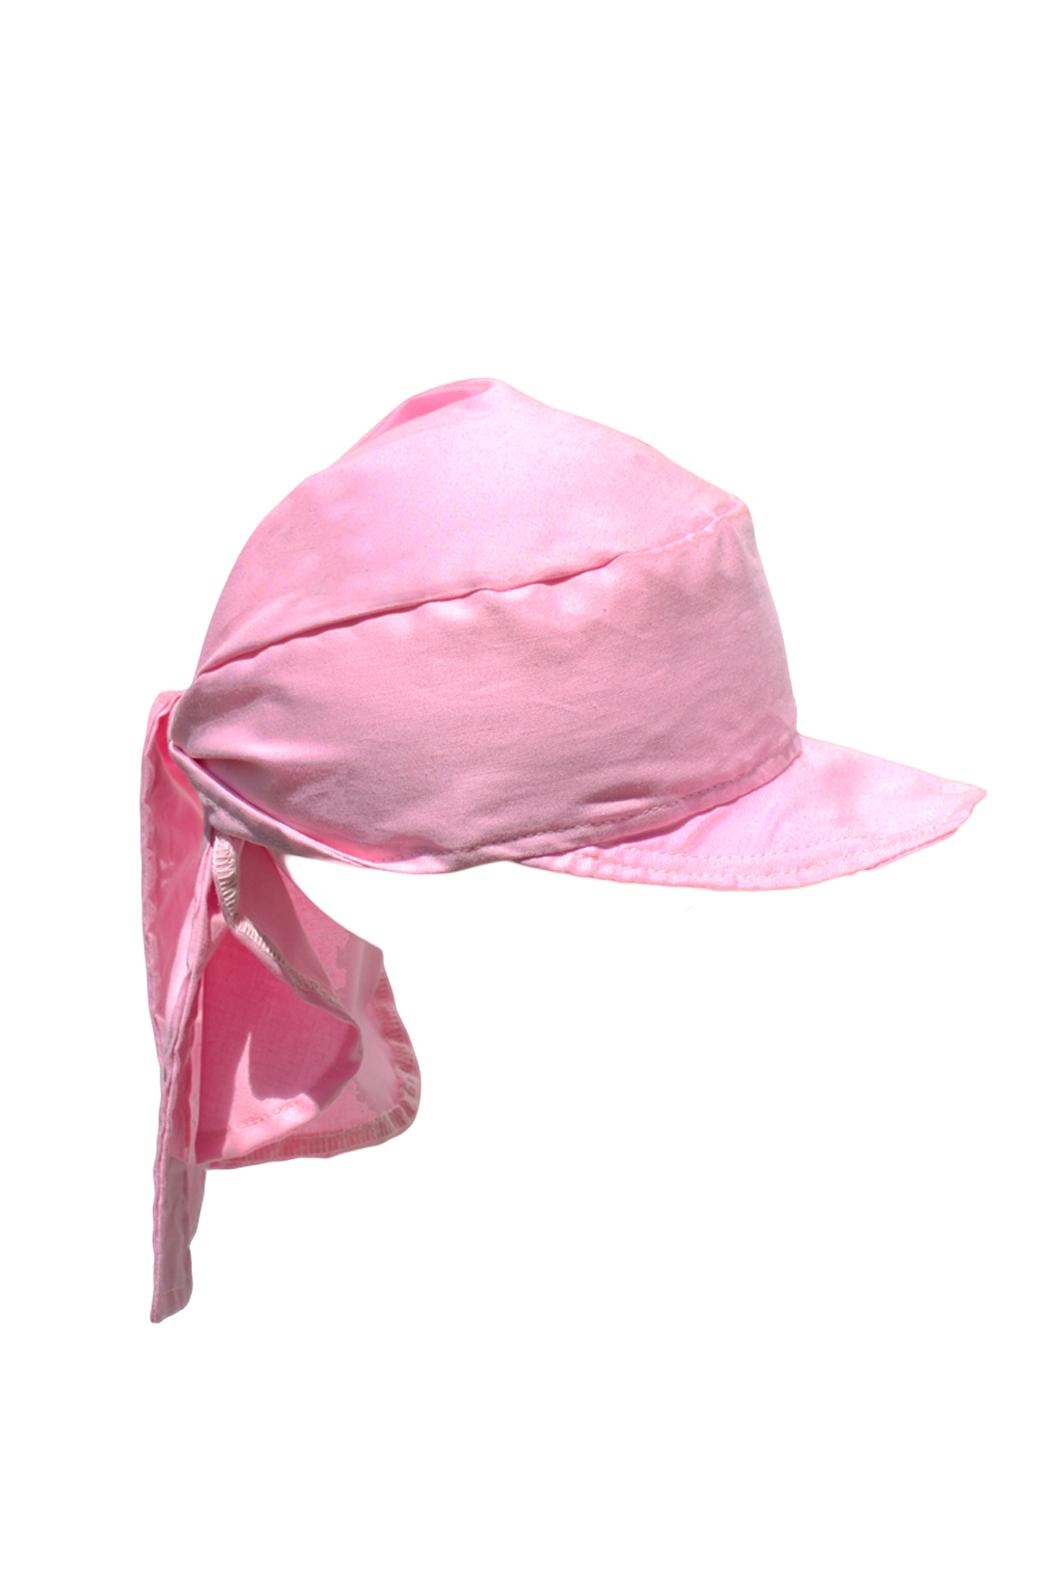 Glup Pink Adjustable Cap - Main Image